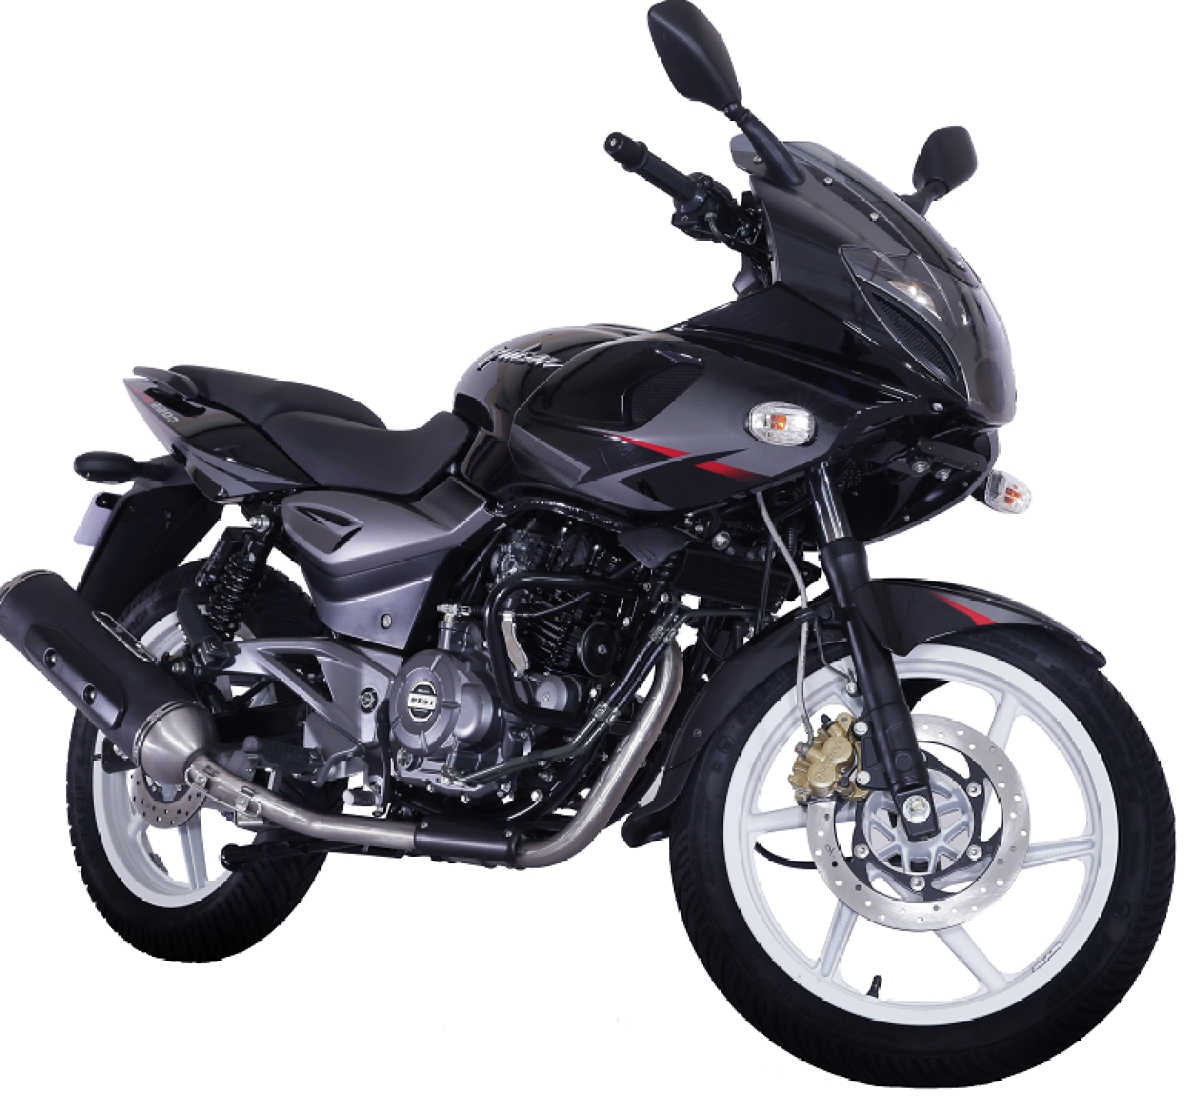 Bajaj launches the Pulsar Black Pack edition